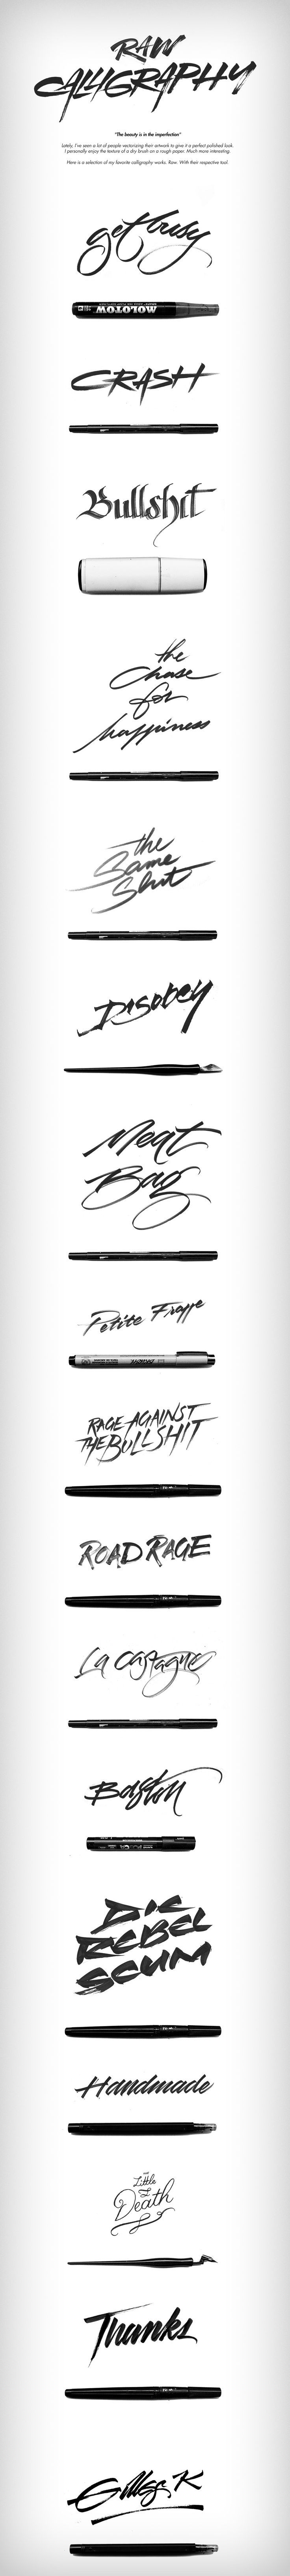 Raw Calligraphy by Gilles.K on Behance